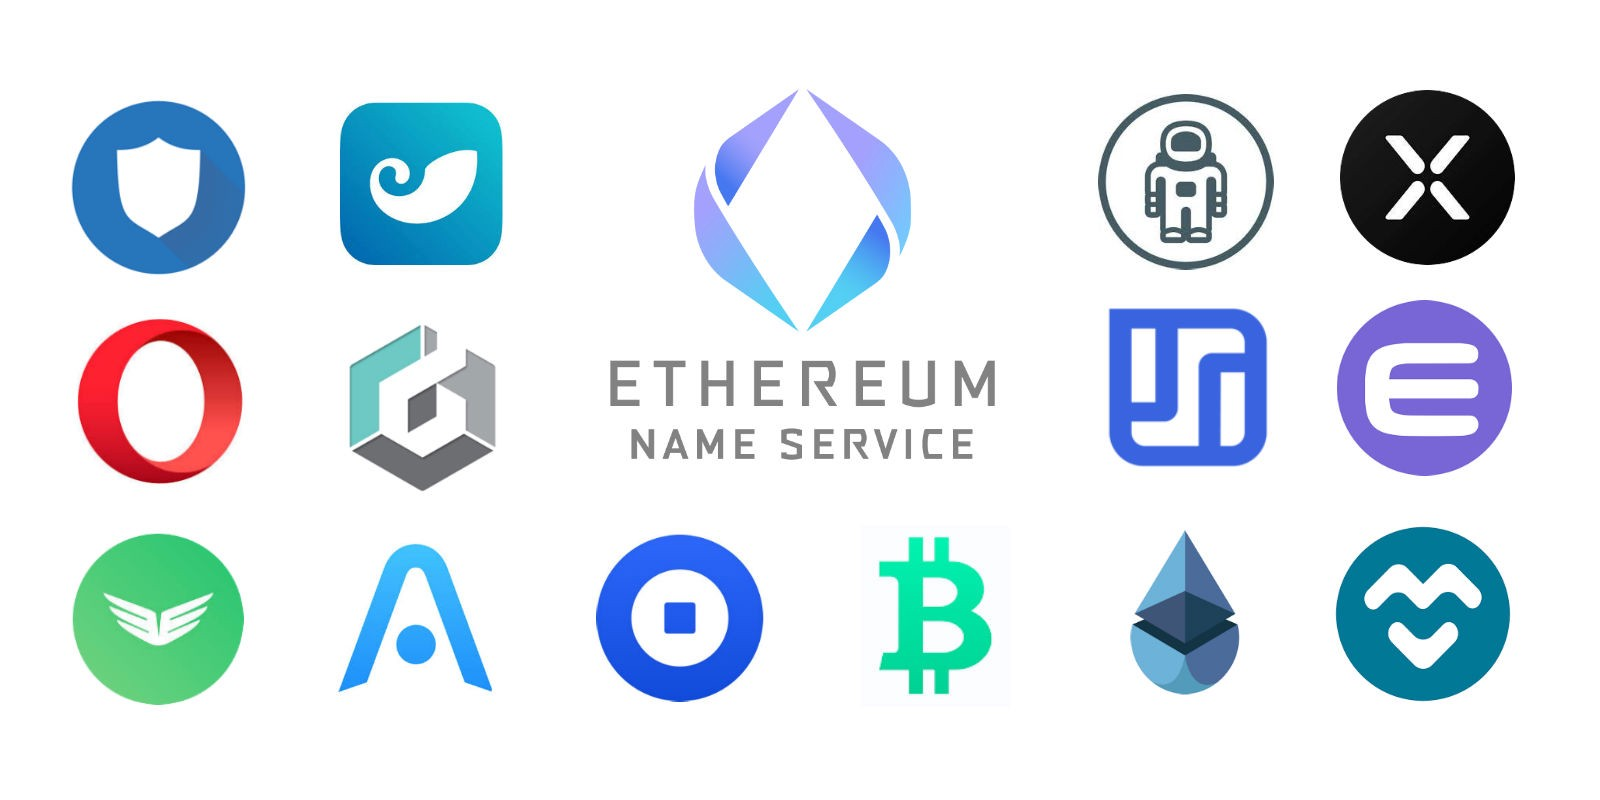 "El servicio de nombres Ethereum agrega infraestructura para el soporte multidivisa ""width ="" 1600 ""height ="" 800 ""srcset = ""https://blackswanfinances.com/wp-content/uploads/2019/10/1fgpl-kh-oydjsv340idoyg.jpeg 1600w, https://news.bitcoin.com/wp-content/uploads/2019/10/ 1fgpl-kh-oydjsv340idoyg-300x150.jpeg 300w, https://news.bitcoin.com/wp-content/uploads/2019/10/1fgpl-kh-oydjsv340idoyg-768x384.jpeg 768w, https: //news.bitcoin. com / wp-content / uploads / 2019/10 / 1fgpl-kh-oydjsv340idoyg-1024x512.jpeg 1024w, https://news.bitcoin.com/wp-content/uploads/2019/10/1fgpl-kh-oydjsv340idoyg-696x348 .jpeg 696w, https://news.bitcoin.com/wp-content/uploads/2019/10/1fgpl-kh-oydjsv340idoyg-1392x696.jpeg 1392w, https://news.bitcoin.com/wp-content/uploads /2019/10/1fgpl-kh-oydjsv340idoyg-1068x534.jpeg 1068w, https://news.bitcoin.com/wp-content/uploads/2019/10/1fgpl-kh-oydjsv340idoyg-840x420.jpeg 840w ""tamaños ="" (ancho máximo: 1600p x) 100vw, 1600px"